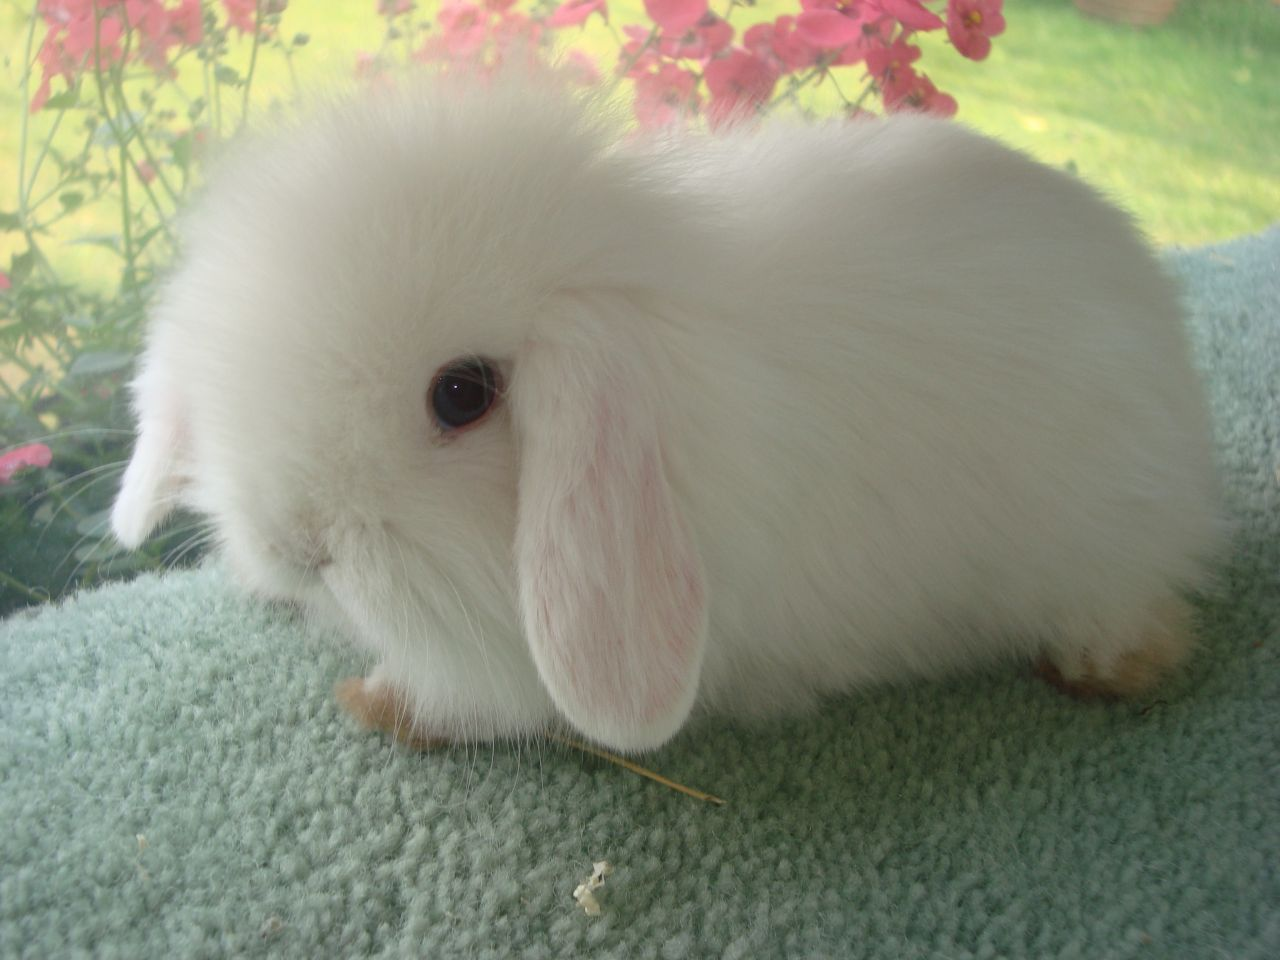 Cute animals for sale - Lion Lop Bunnies For Sale Female Baby Bunny 35 Posted 1